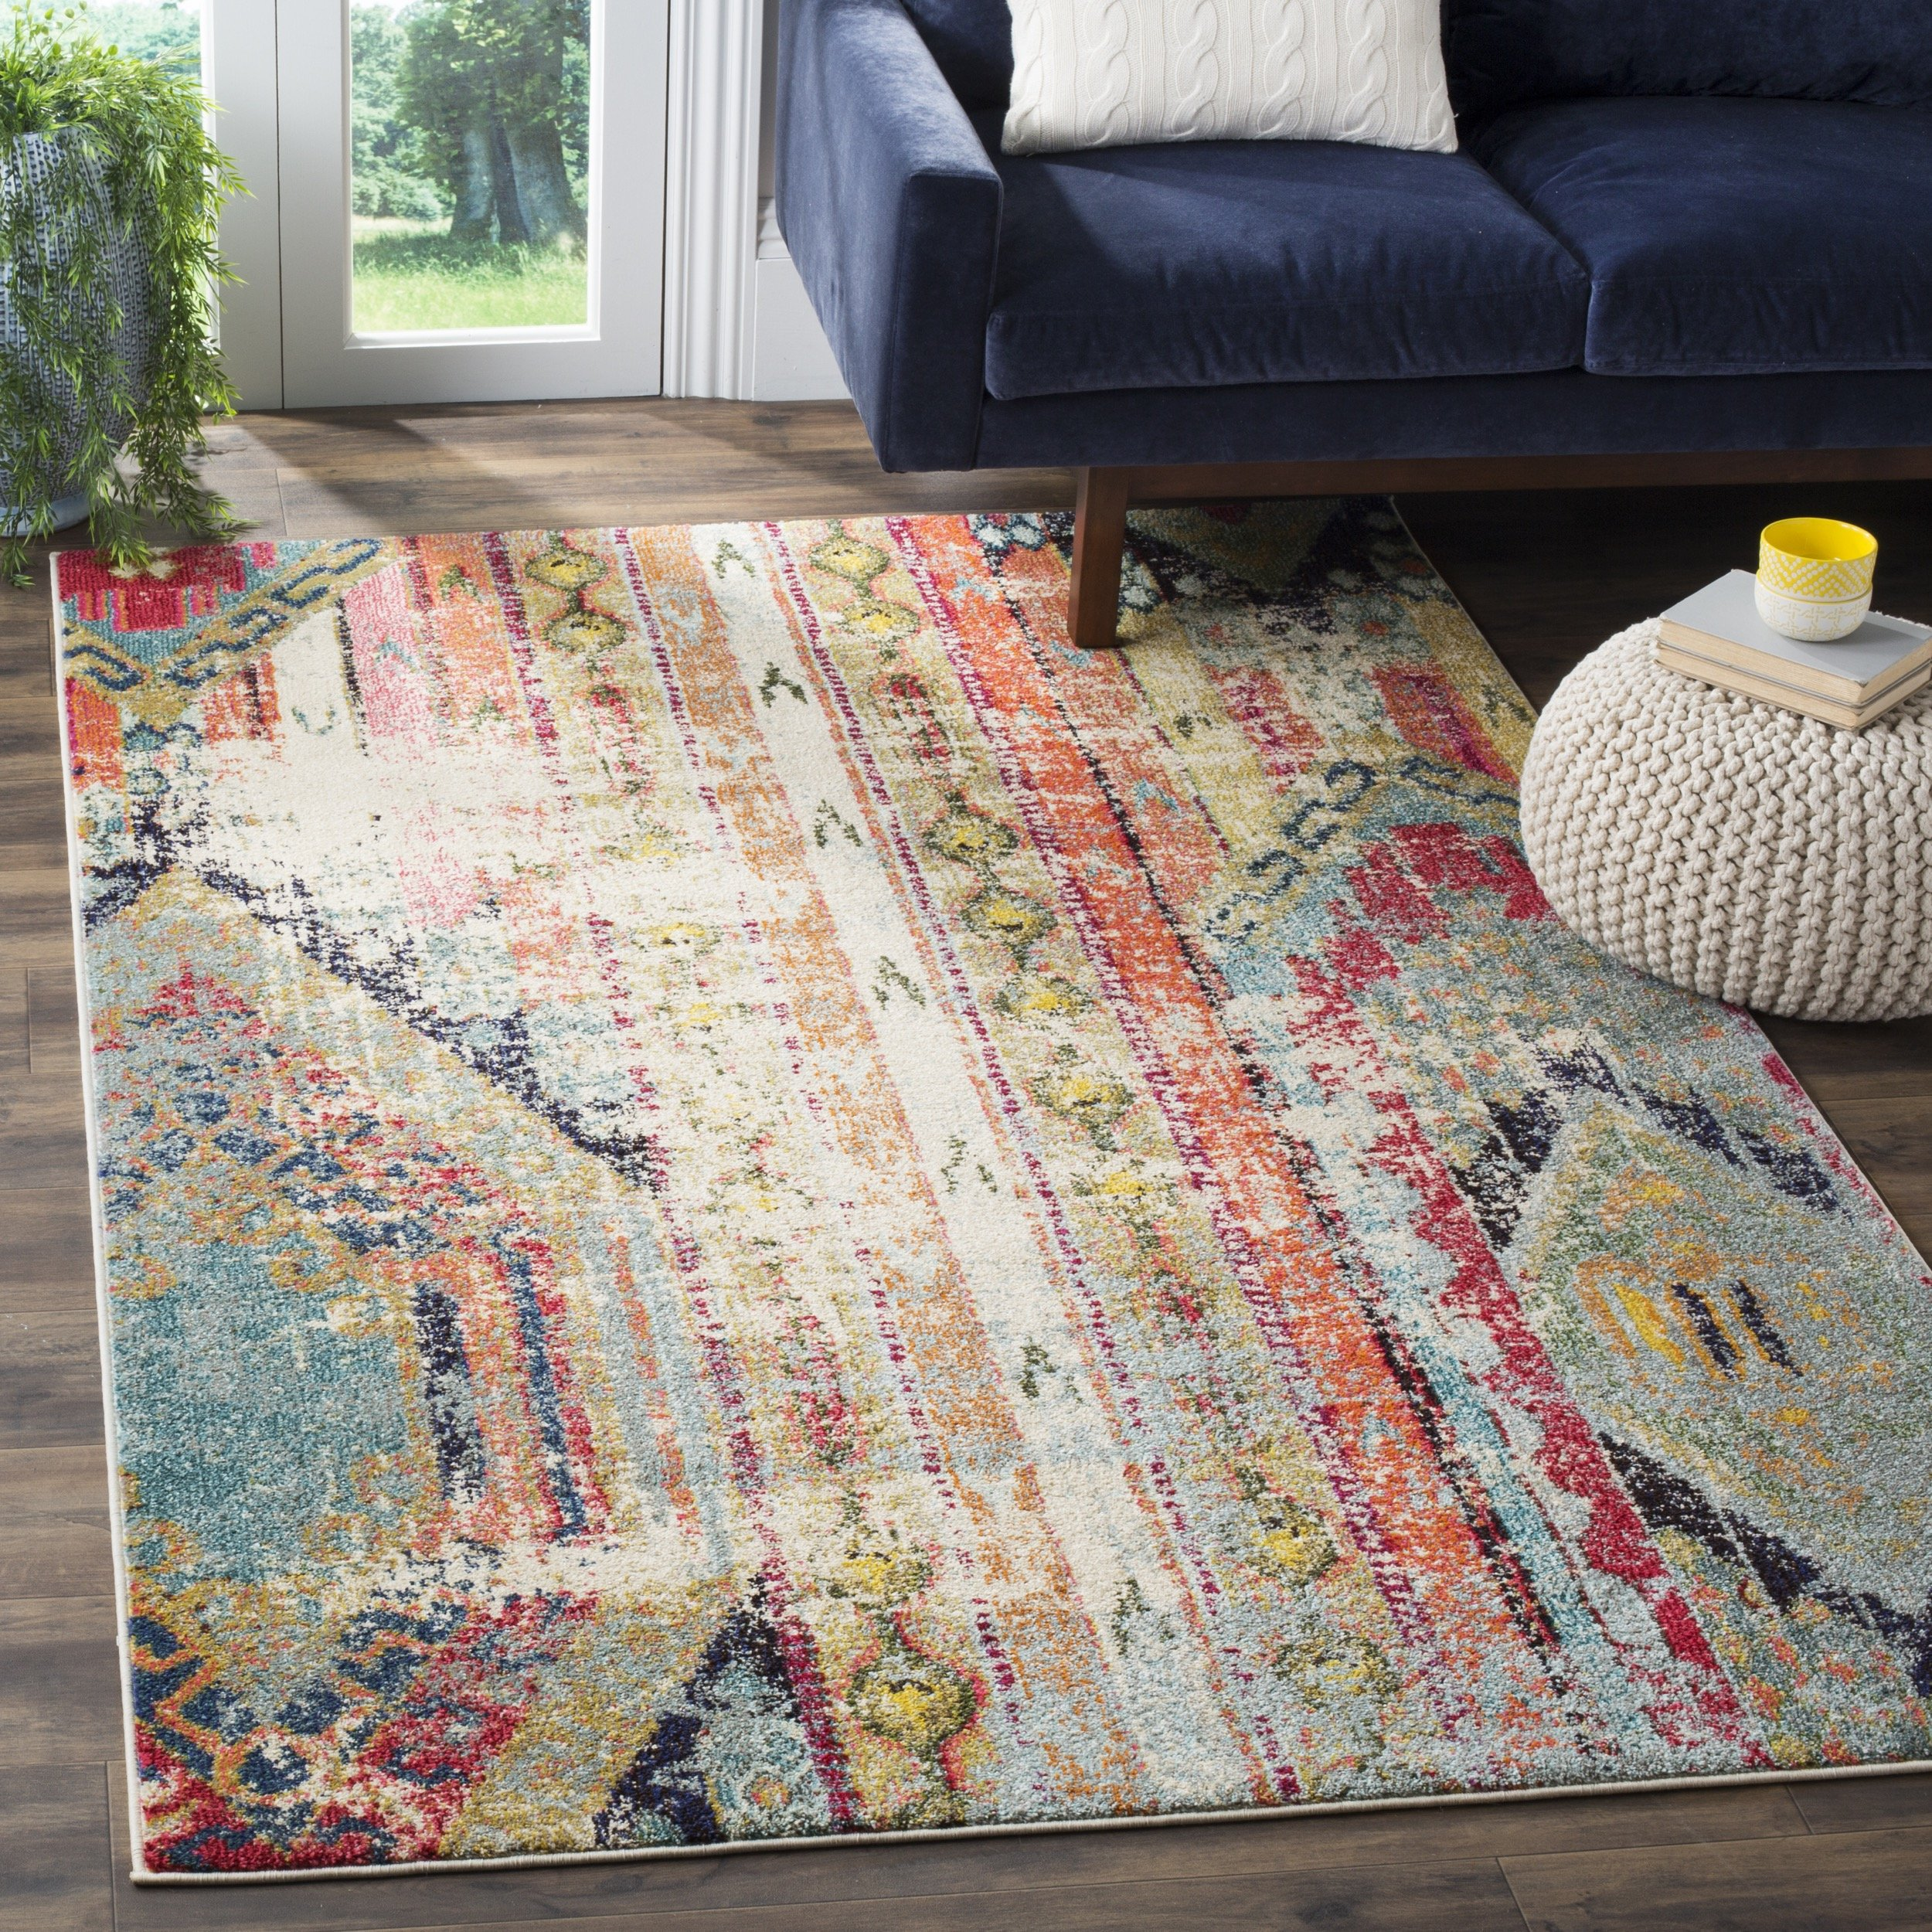 Safavieh Monaco Collection MNC222F Modern Bohemian Multicolored Distressed Area Rug (5'1'' x 7'7'') by Safavieh